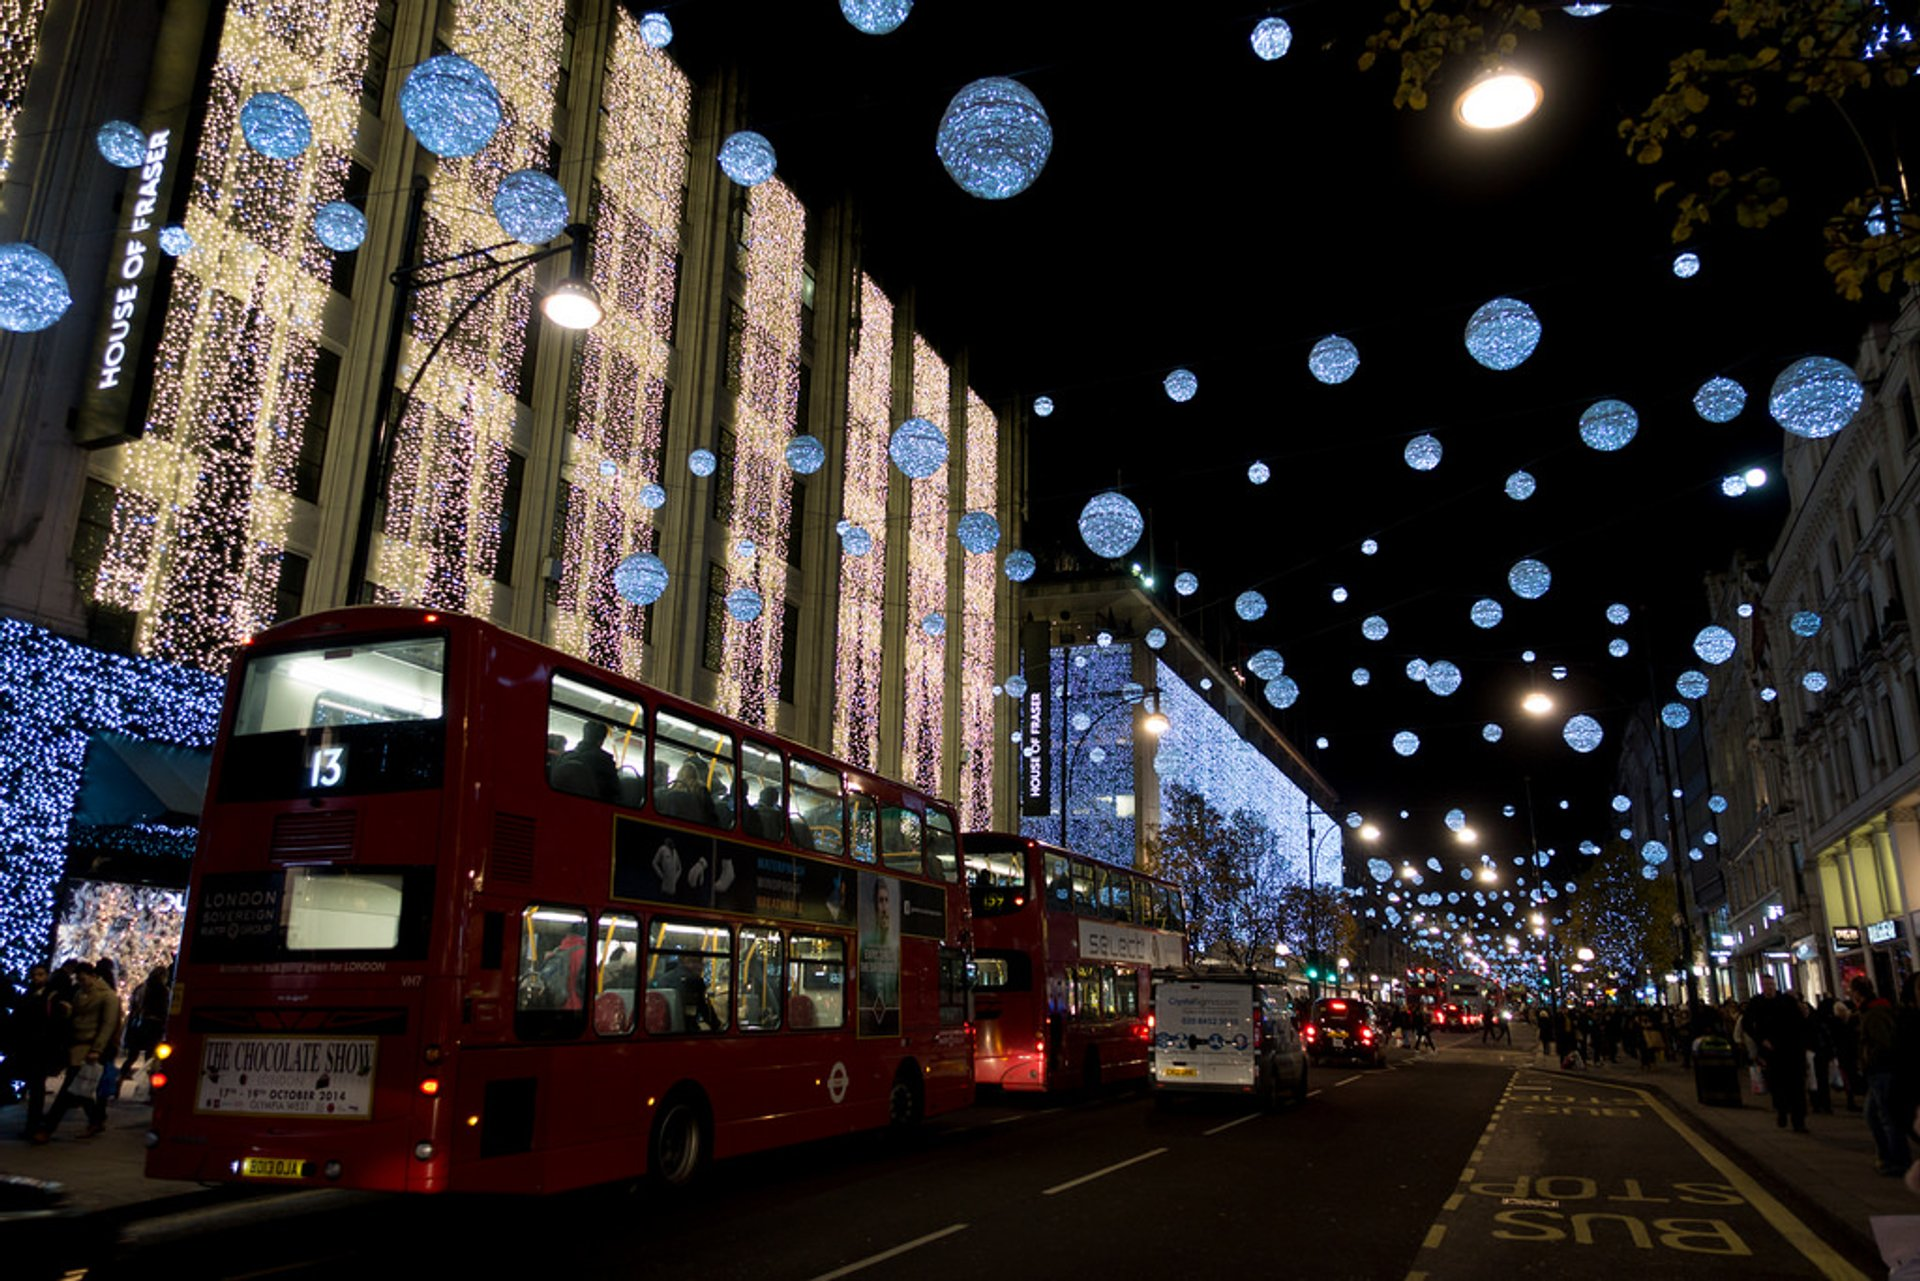 Oxford Street at Christmas 2020